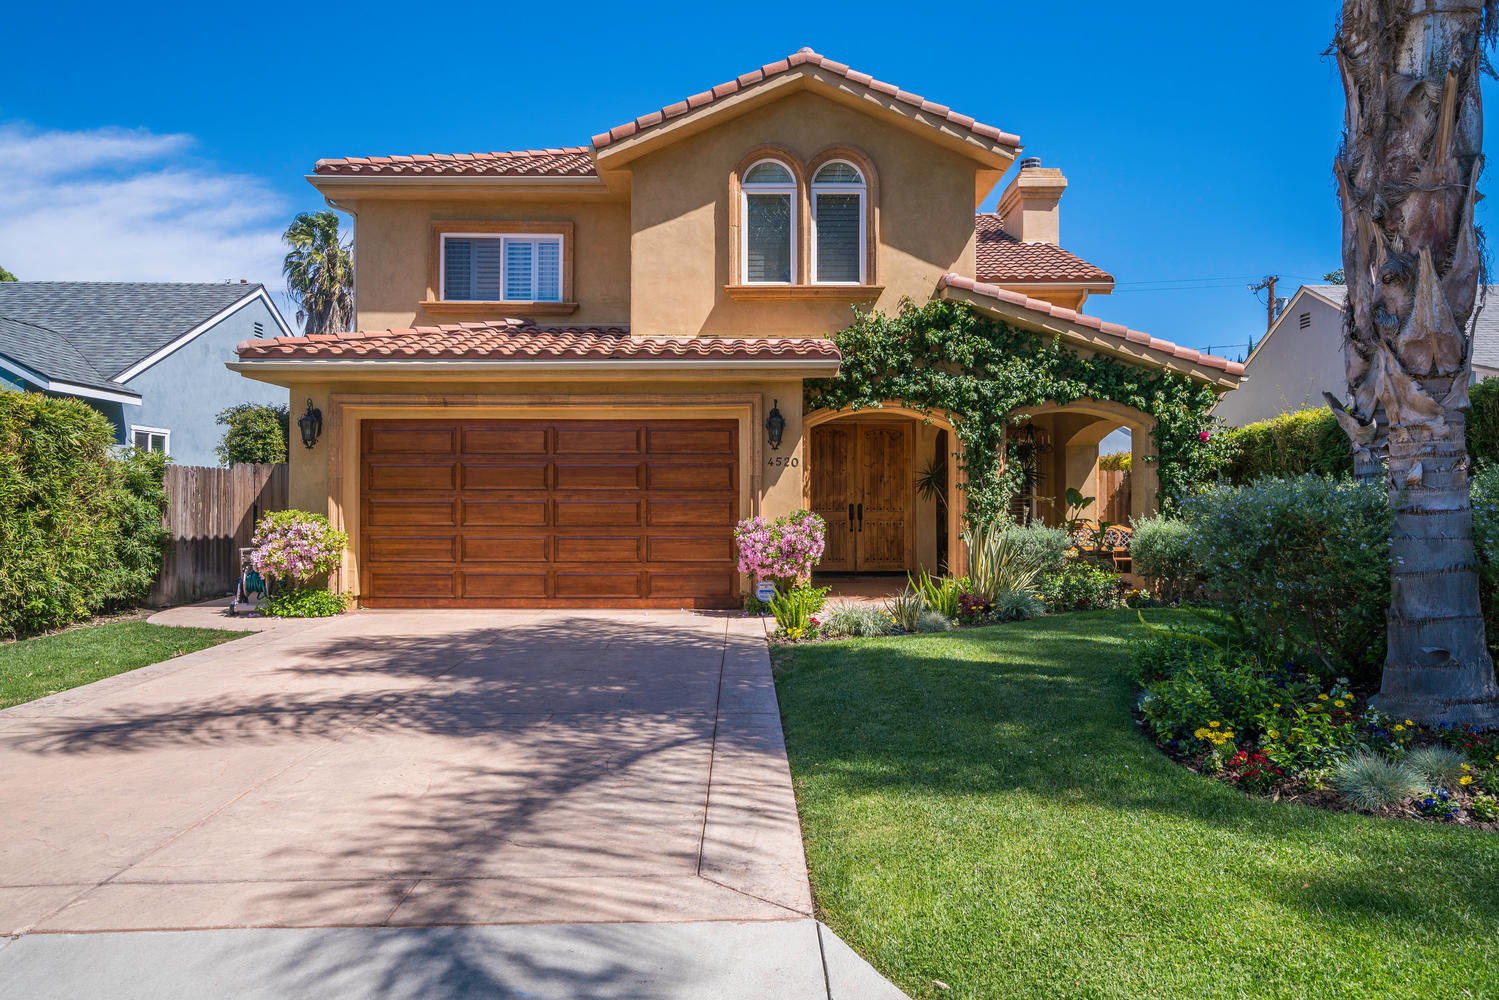 Single Family Home for Sale at 4520 Tyrone Ave Sherman Oaks, California 91423 United States